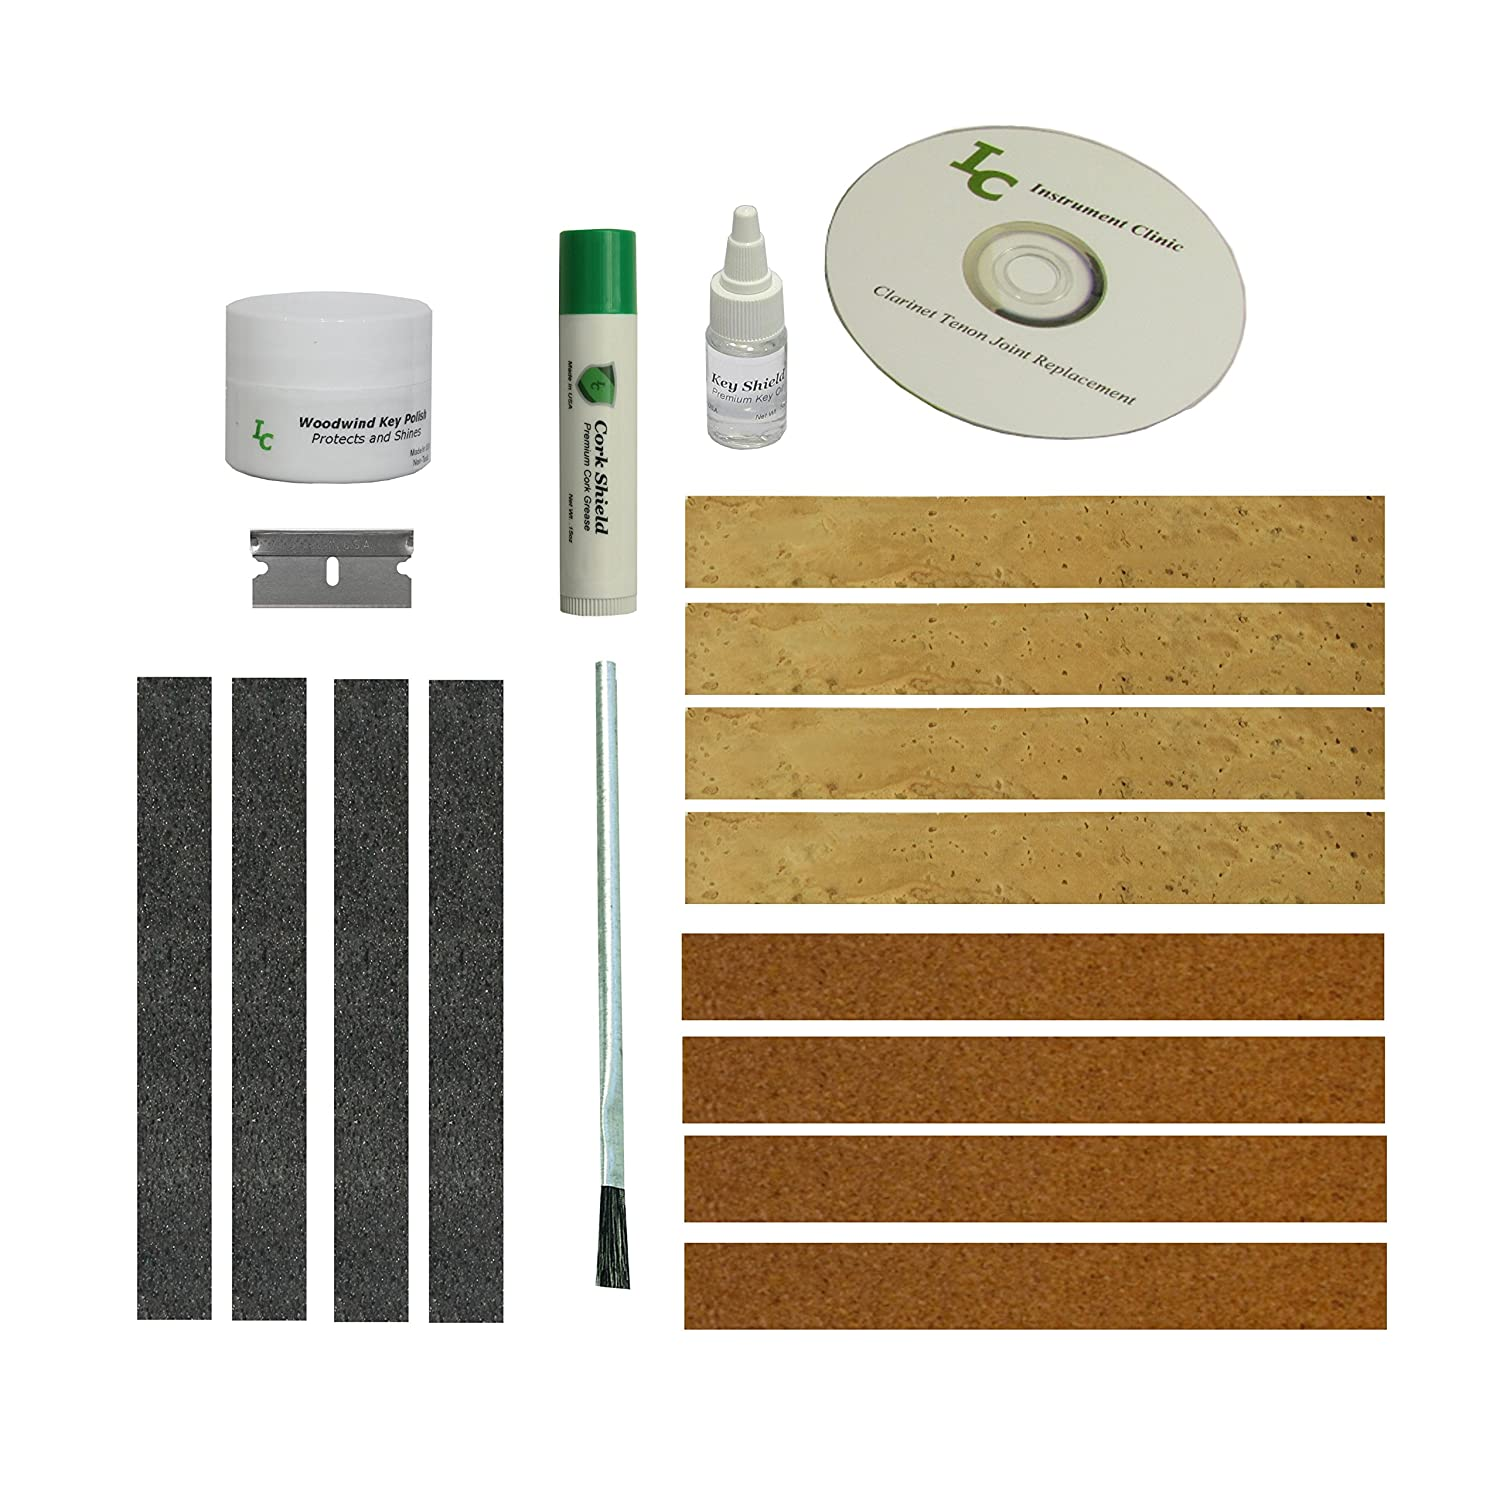 Clarinet Joint Cork Kit, Complete, Synthetic Cork, with Maintenance Items! (Adhesive not included due to shipping regulations) Instrument Clinic 4334281360